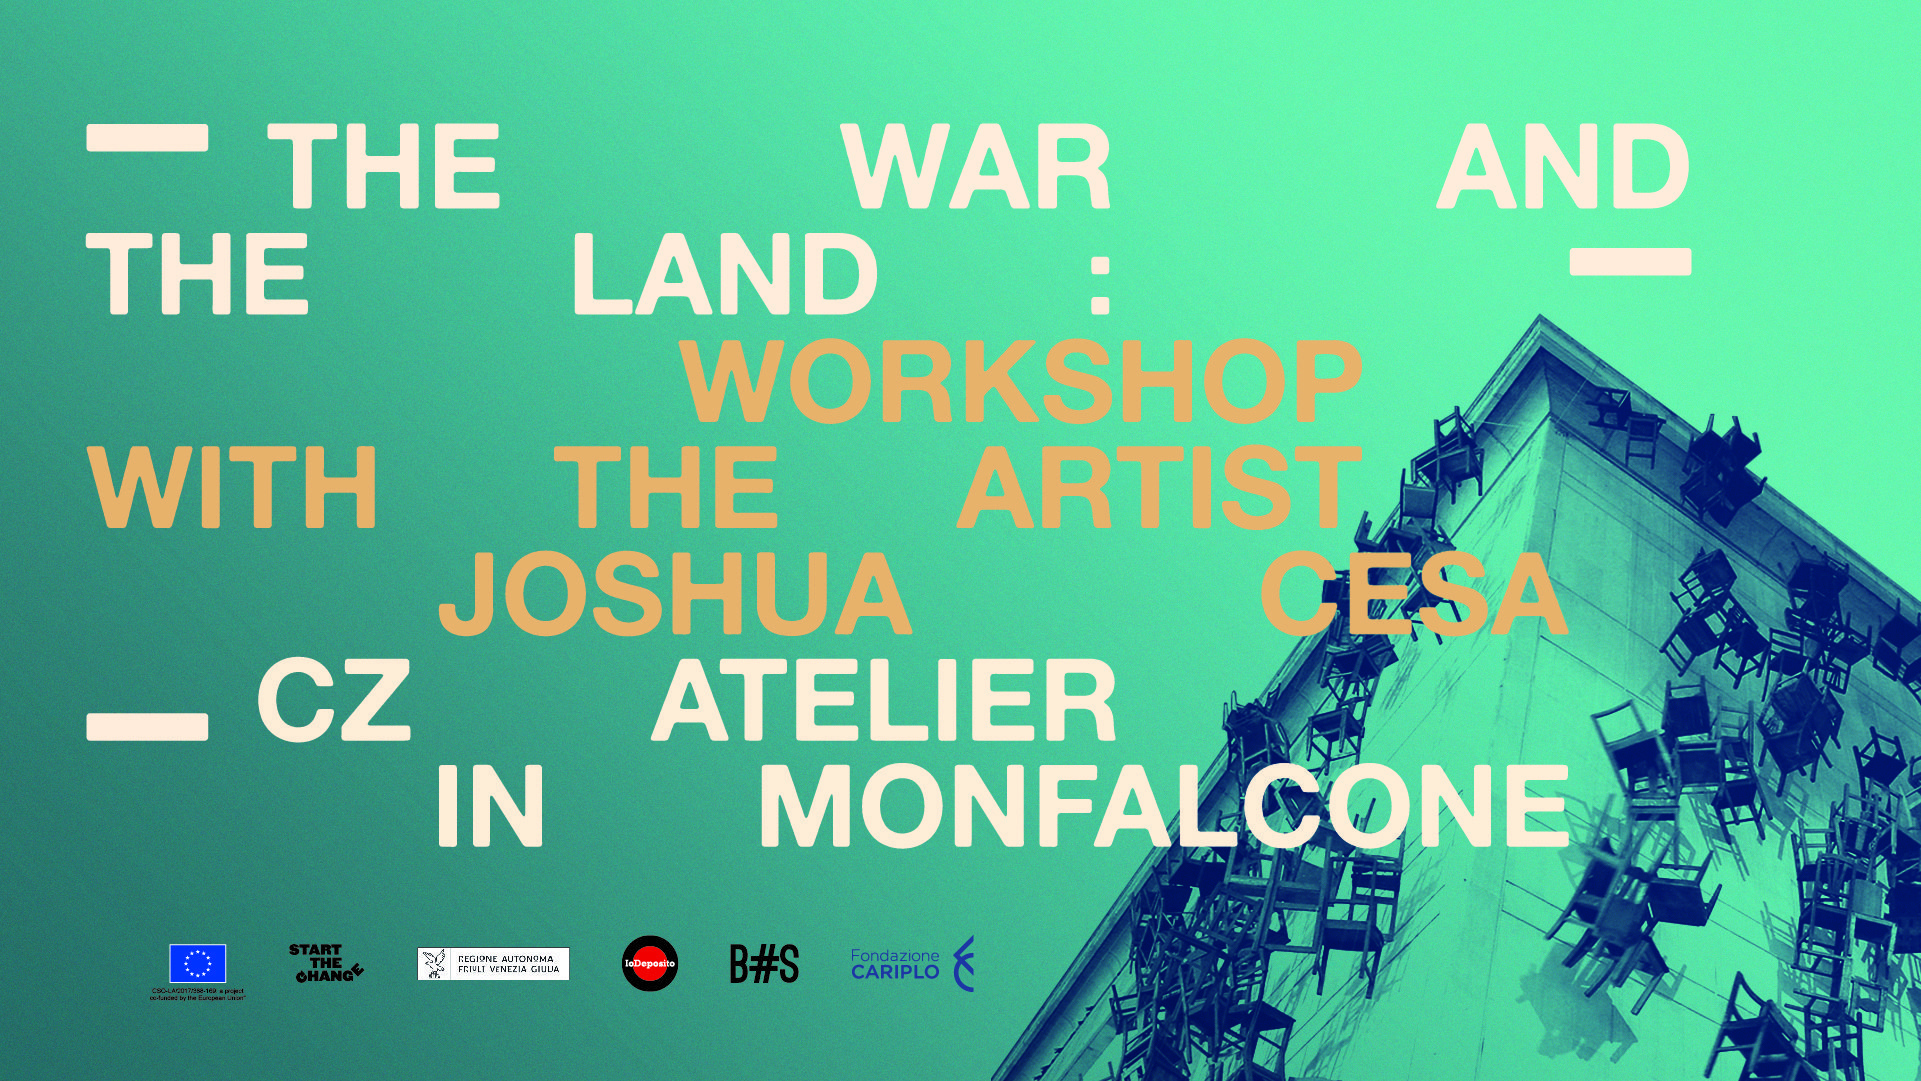 The War & the Land / Atelier with Joshua Cesa